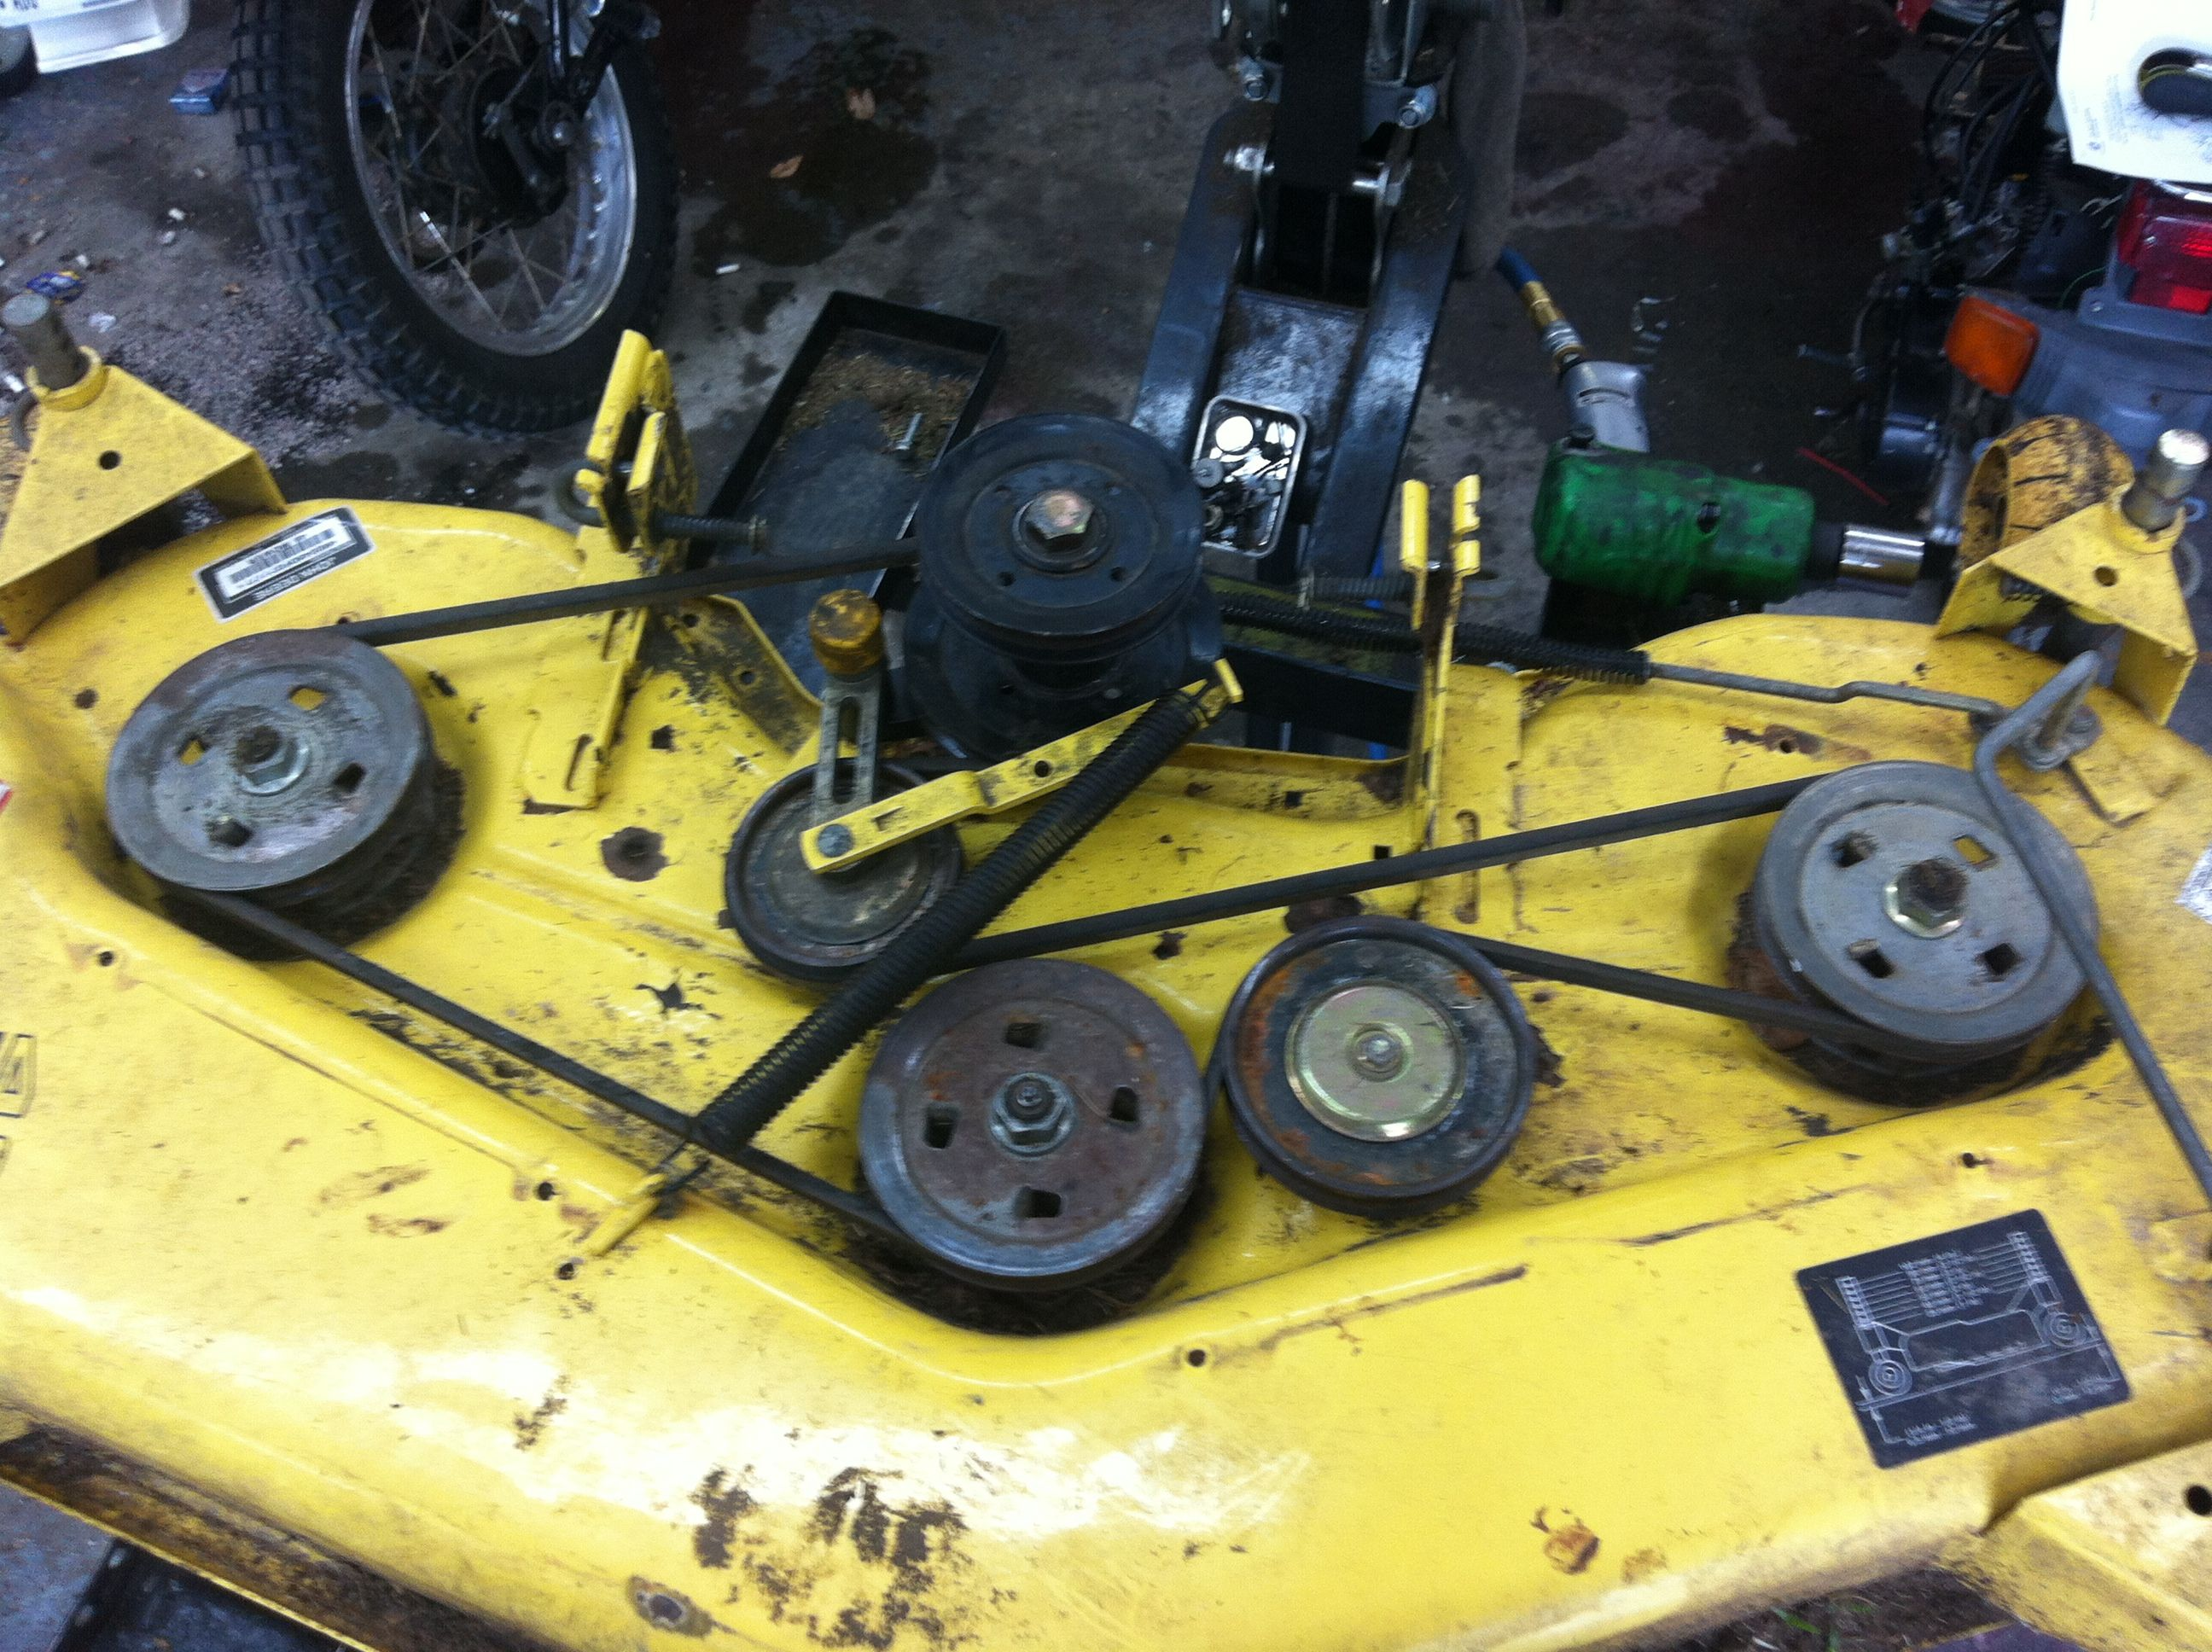 medium resolution of john deere 245 belt diagram for mower deck here is a picture showing the correct